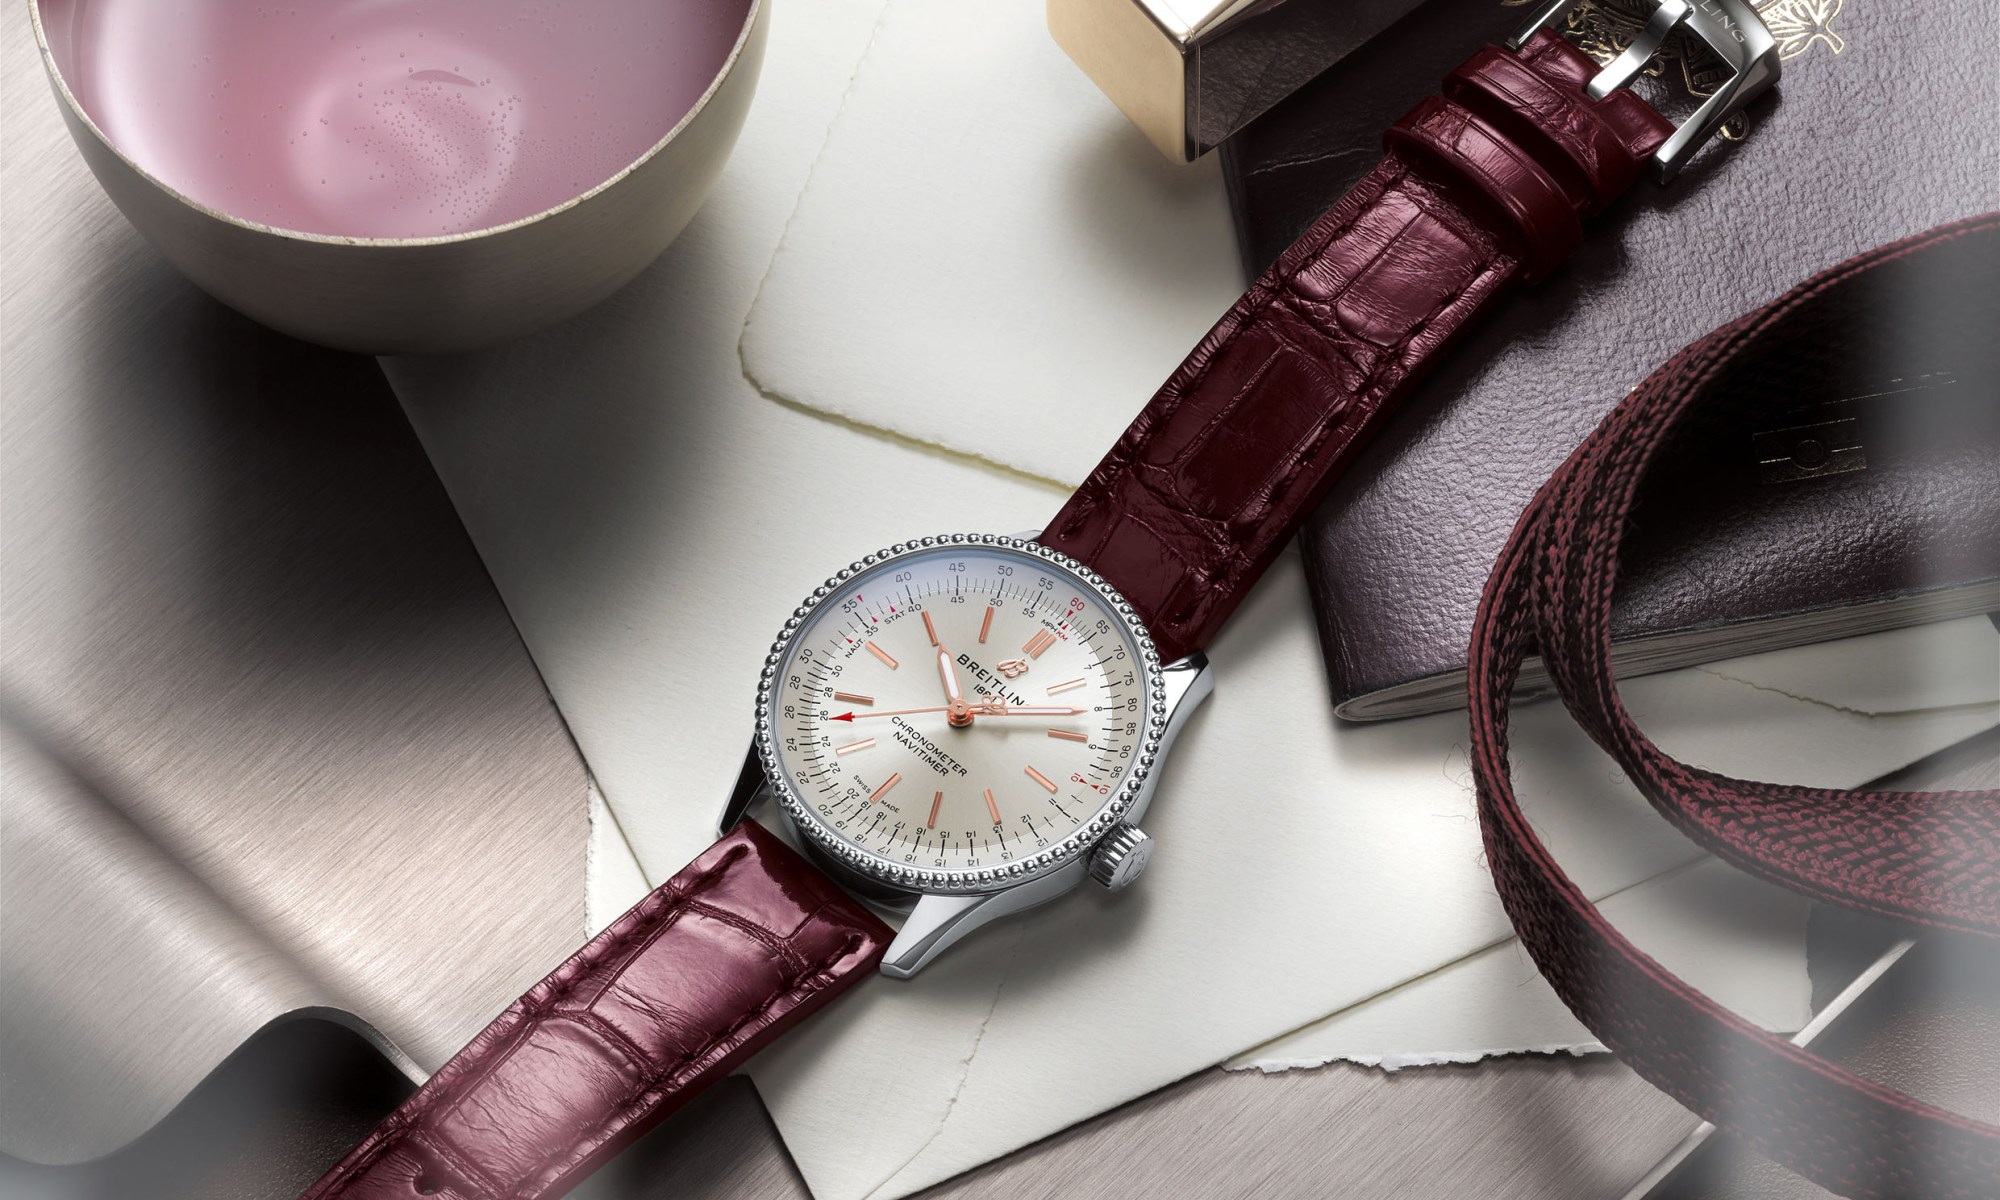 06 Navitimer Automatic 35 With A Silver Dial And A Burgundy Alligator Leather Strap 1